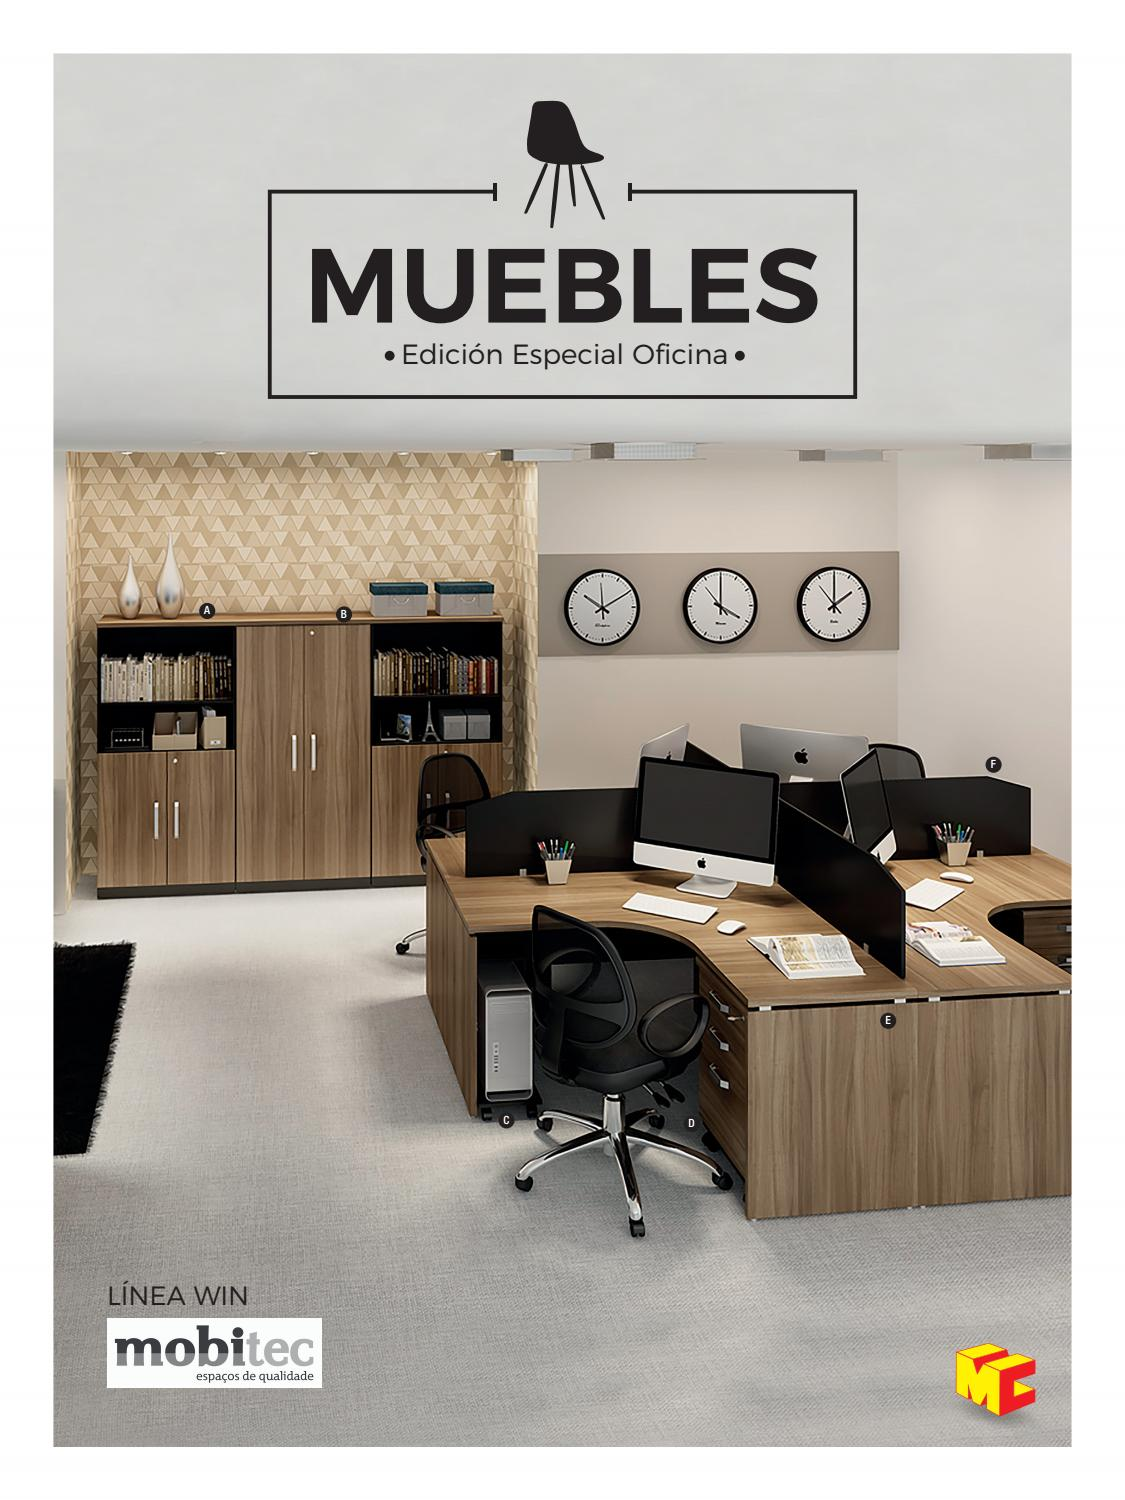 Folletos De Muebles Catálogo Mobitec 2017 Multicenter By Multicenter Bolivia